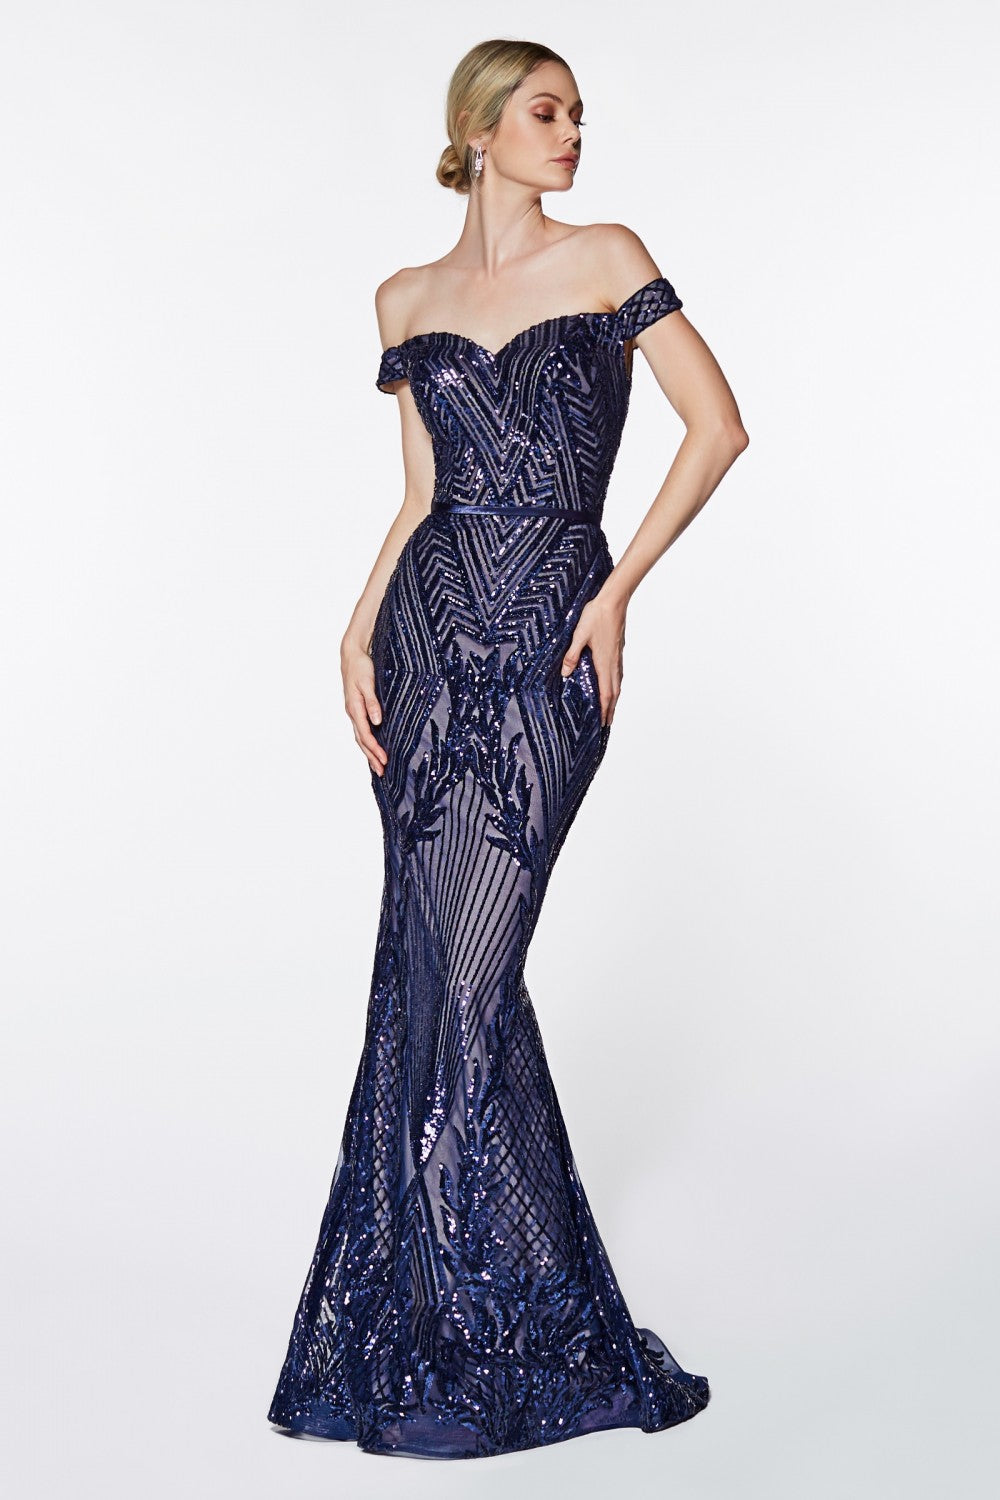 Cinderella Divine Chart I CD CB0039 - Off-the-Shoulder Gown with Geometric Sequin Detail & Sweetheart Neckline - Diggz Prom